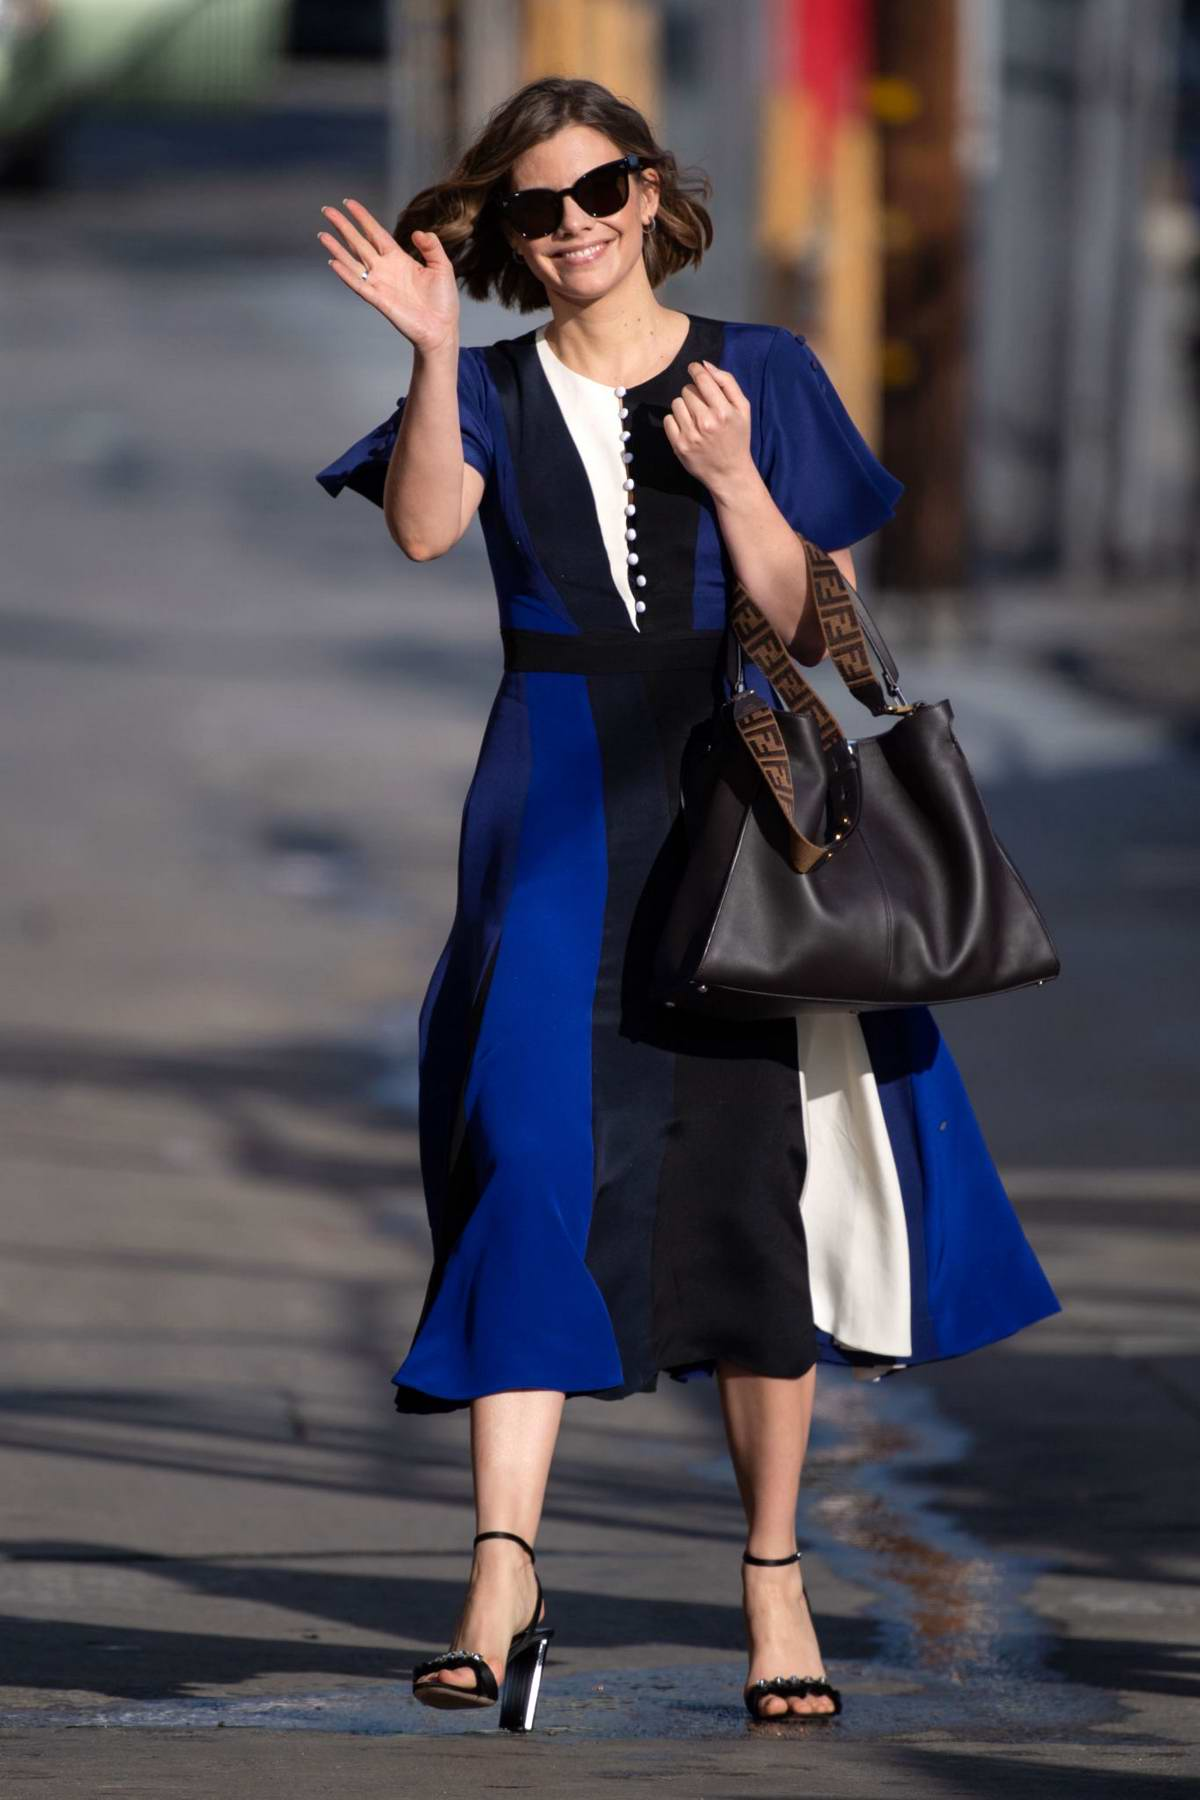 Lauren Cohan waves for the camera as she arrives for her appearance on Jimmy Kimmel Live! in in Los Angeles